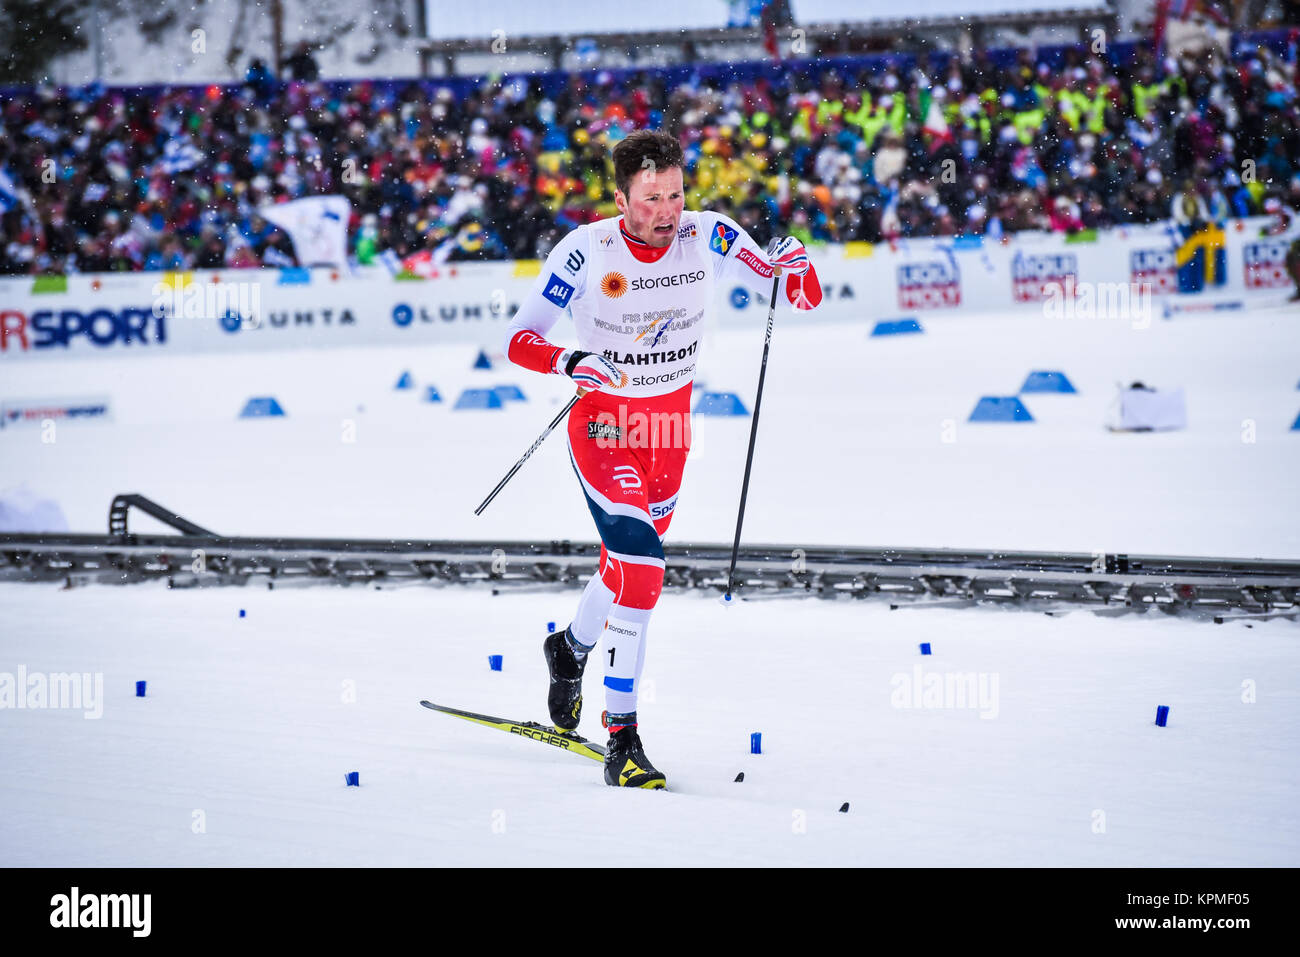 Anguished Norway's Emil Iversen struggles to team sprint finish 4th with broken pole in the 2017 FIS World Championships - Stock Image